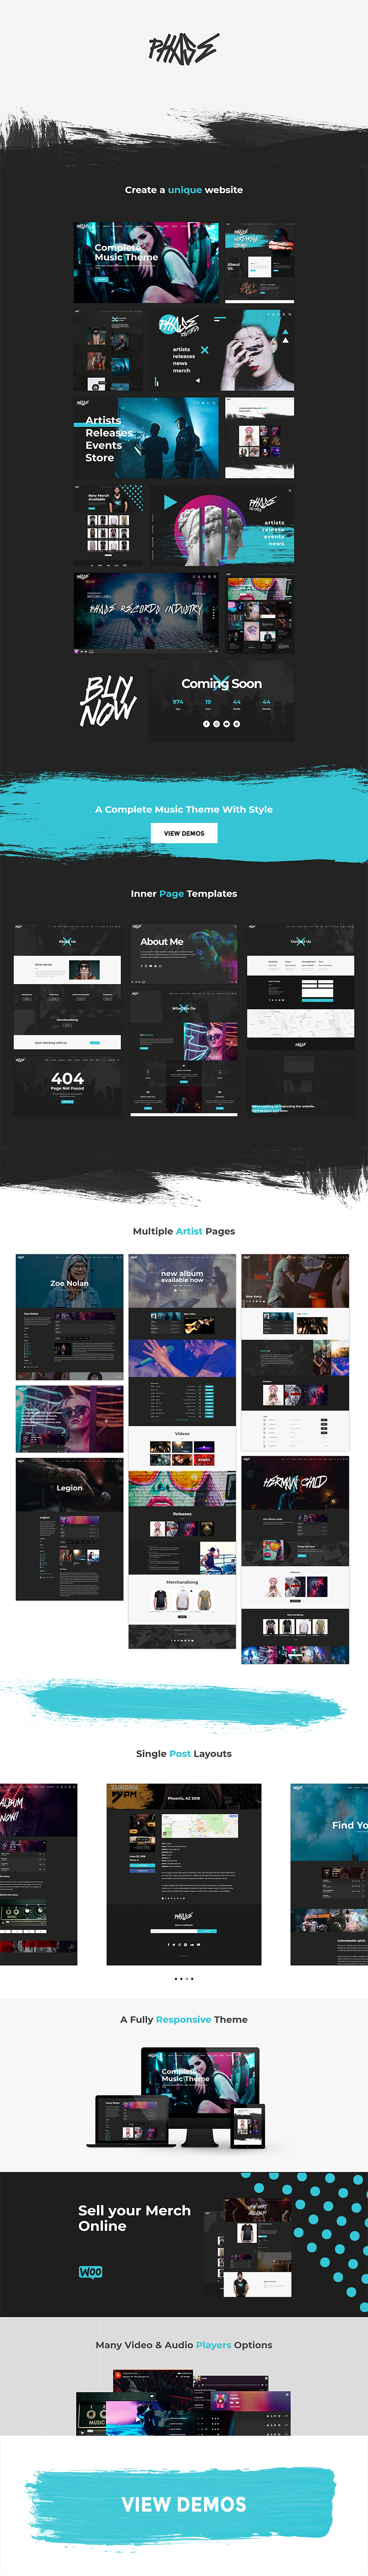 WordPress theme Phase - A Complete Music WordPress Theme for Record Labels and Artists (Music and Bands)